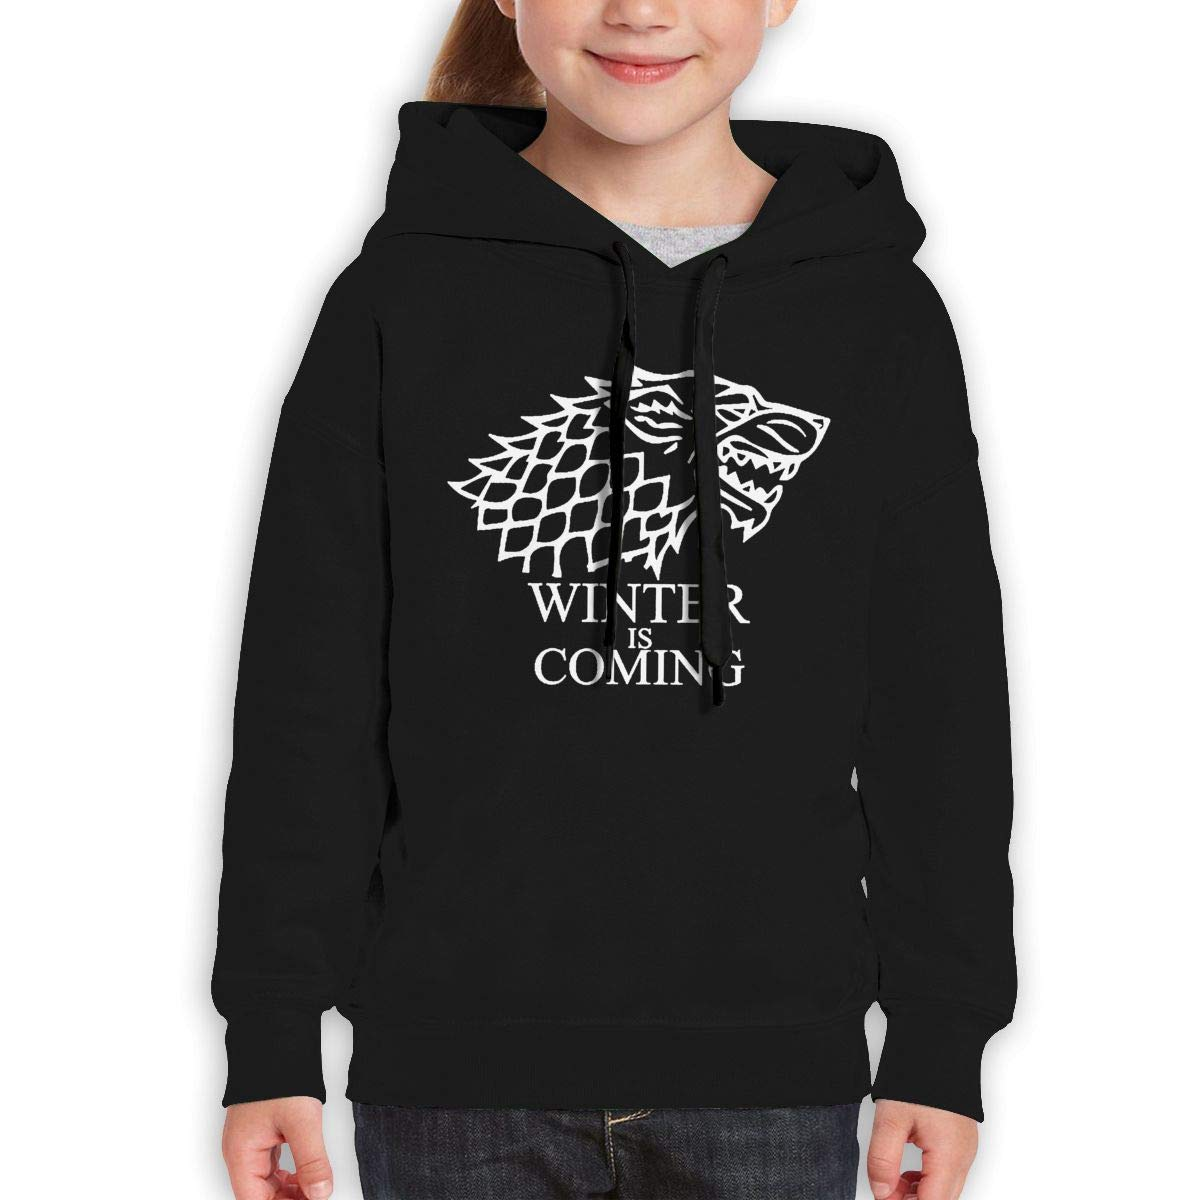 Guiping Song of Ice and Fire Game of Thrones Teen Hooded Sweate Sweatshirt Black